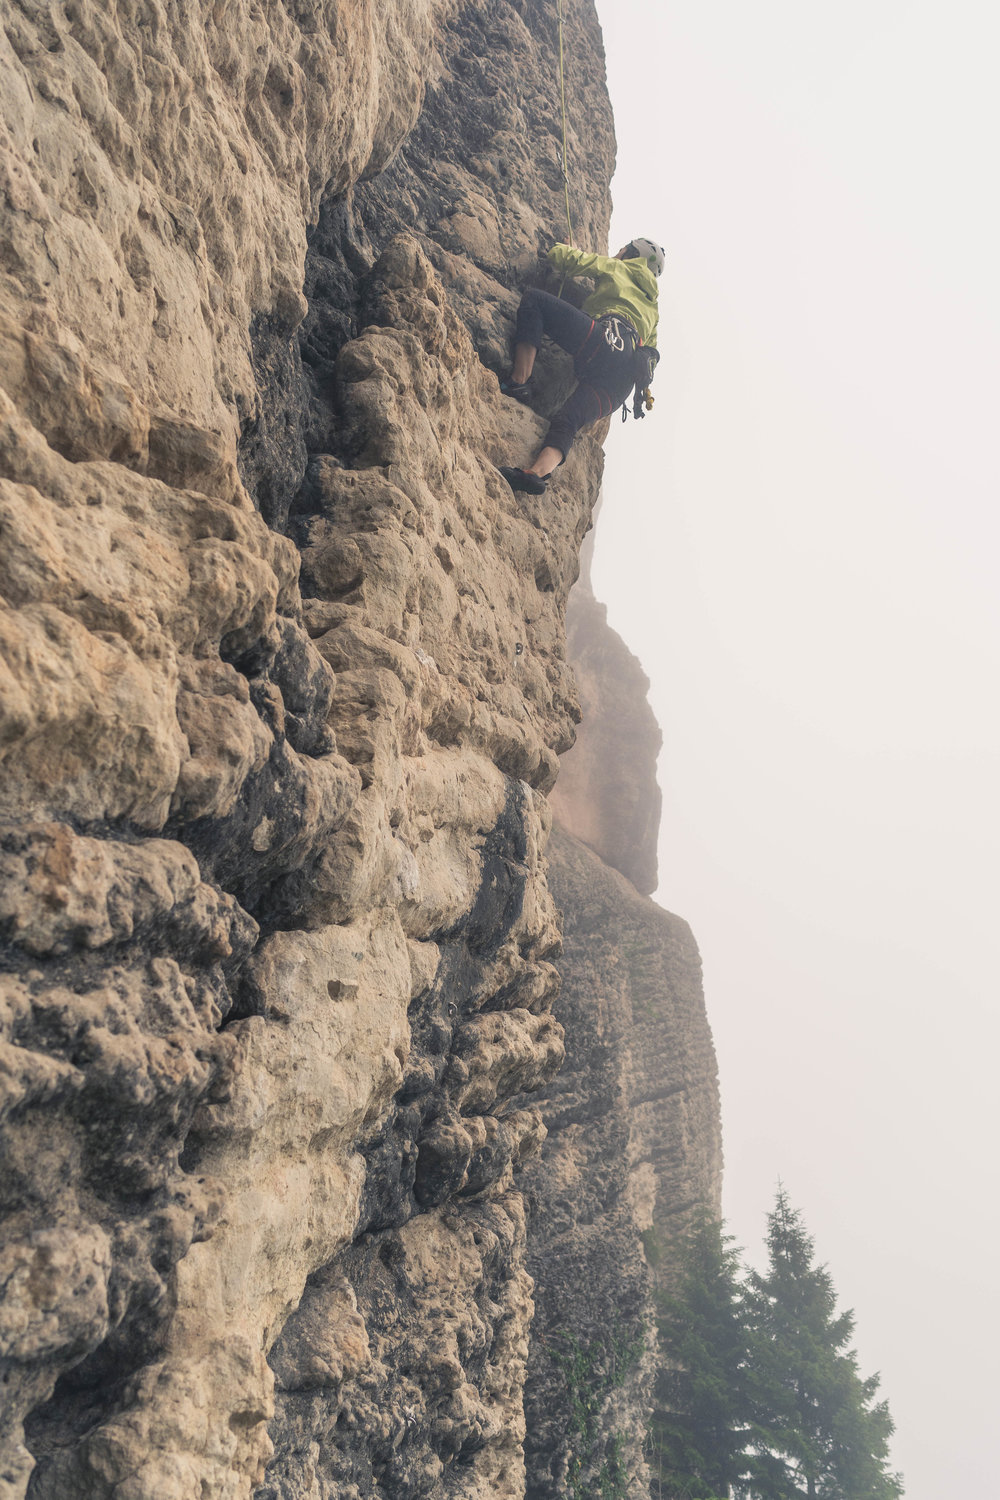 Climbing in the mist, Dogankaya/Trabzon